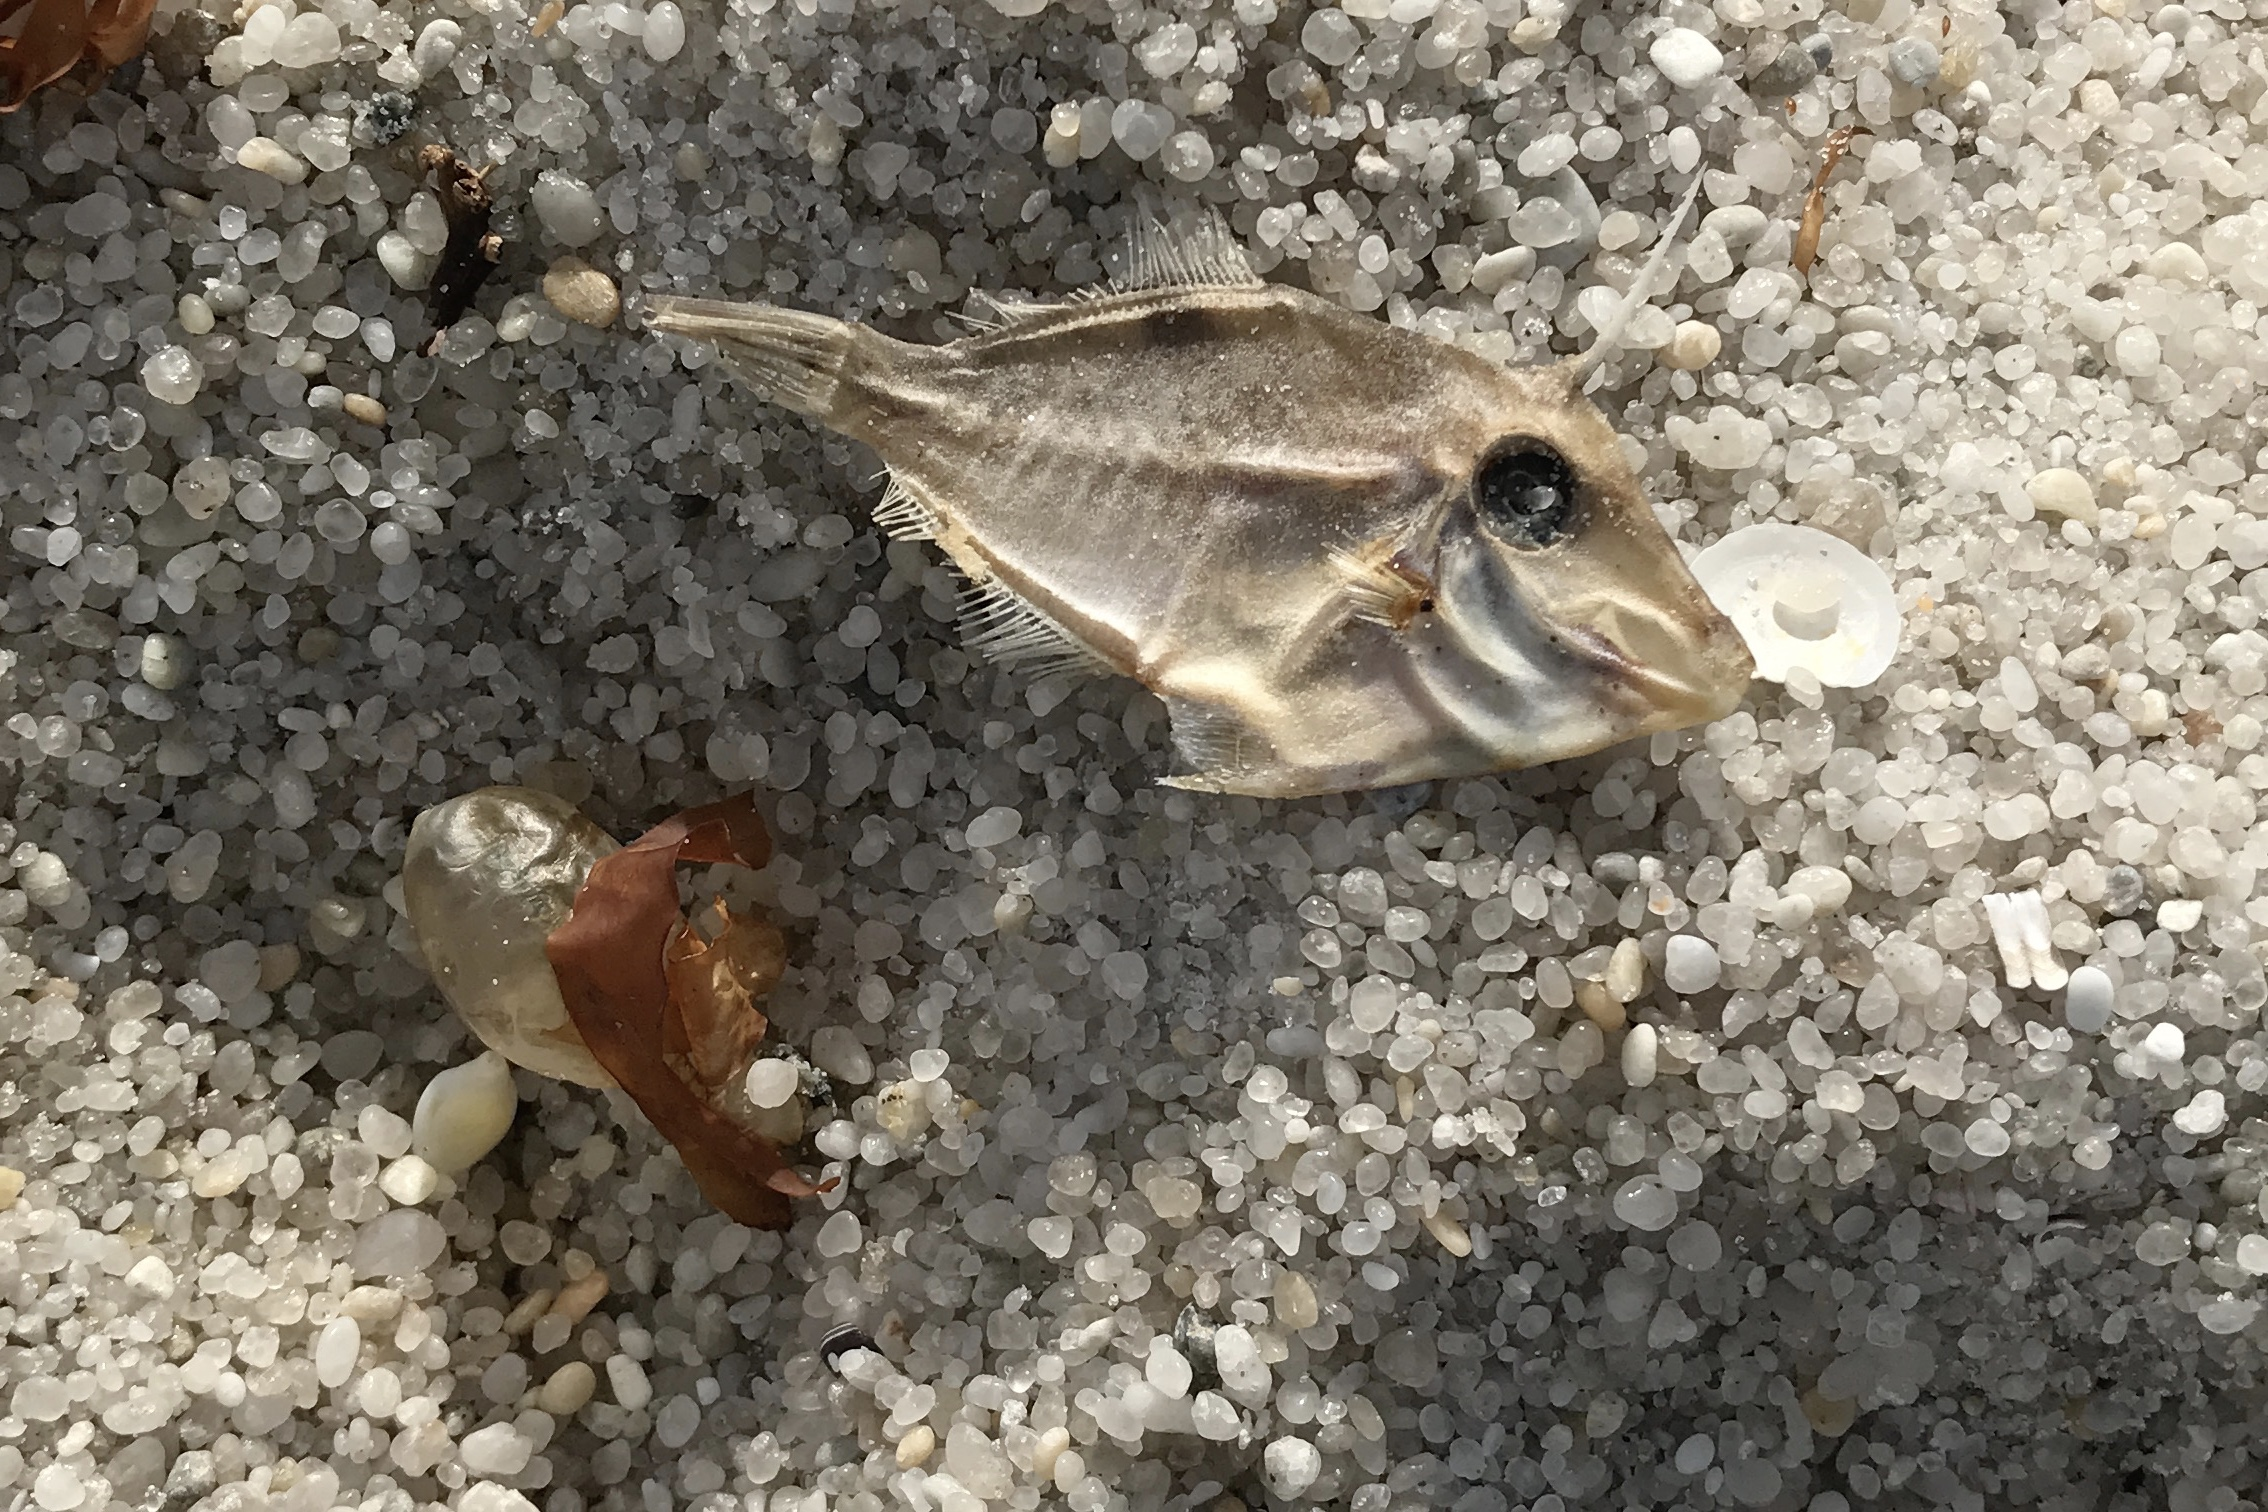 Found lots of these fish fossils washed up along the beach.